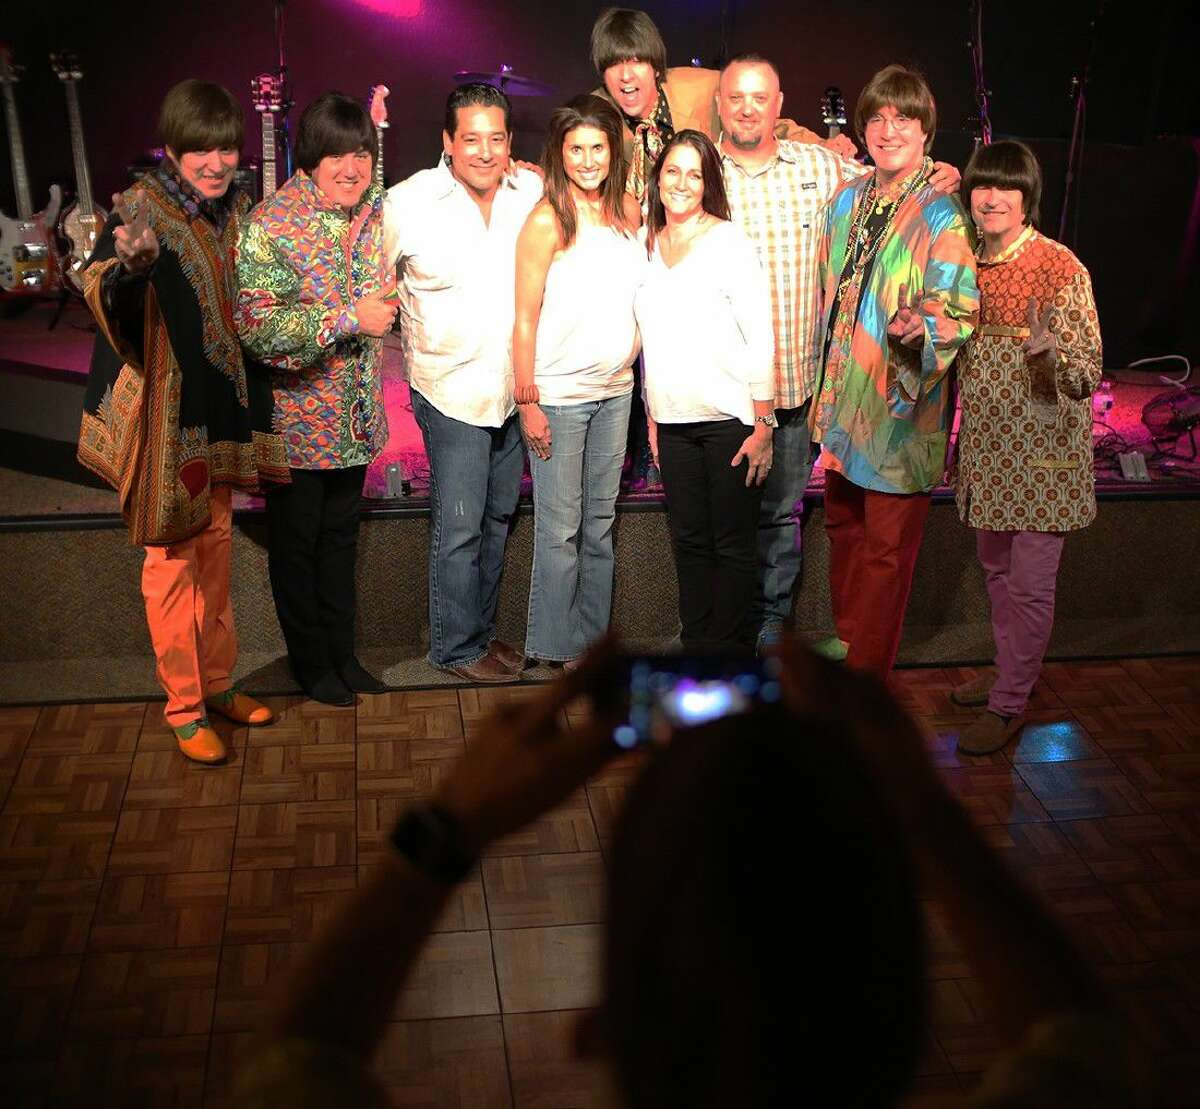 The Beatles tribute band The Fab 5 takes selfies with fans after their concert during the 2016 Alvin Live Summer Series on August 11.